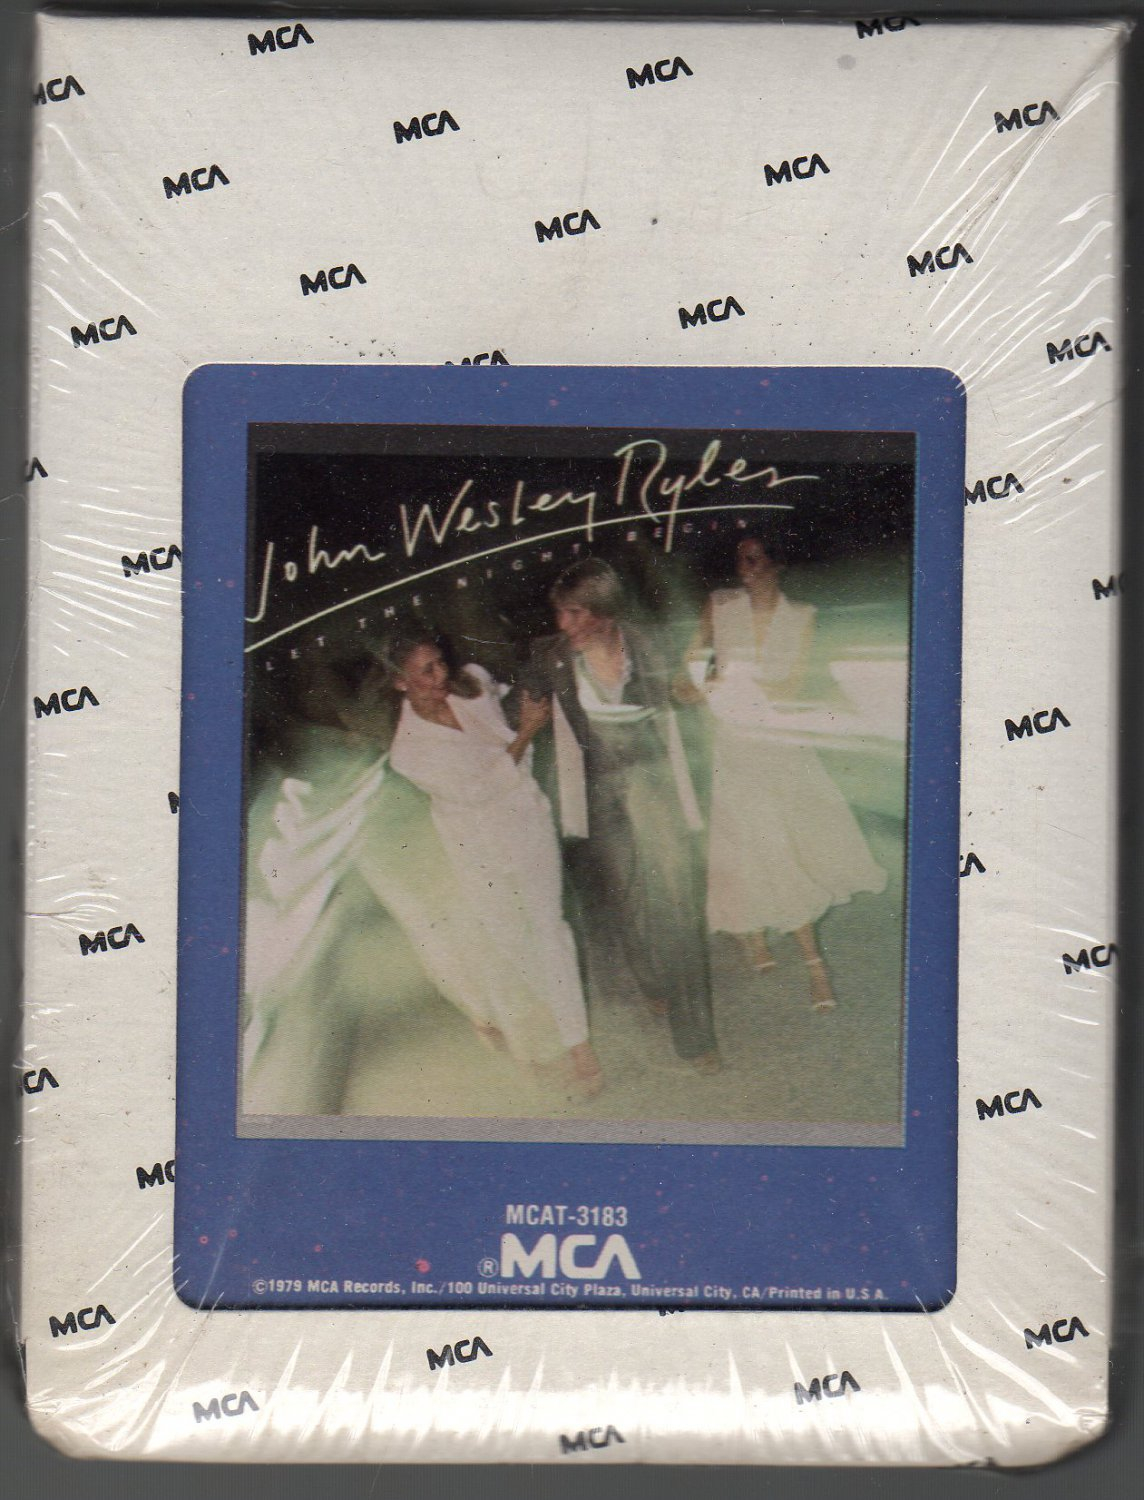 John Wesley Ryles - Let The Night Begin 1979 MCA Sealed A26 8-TRACK TAPE